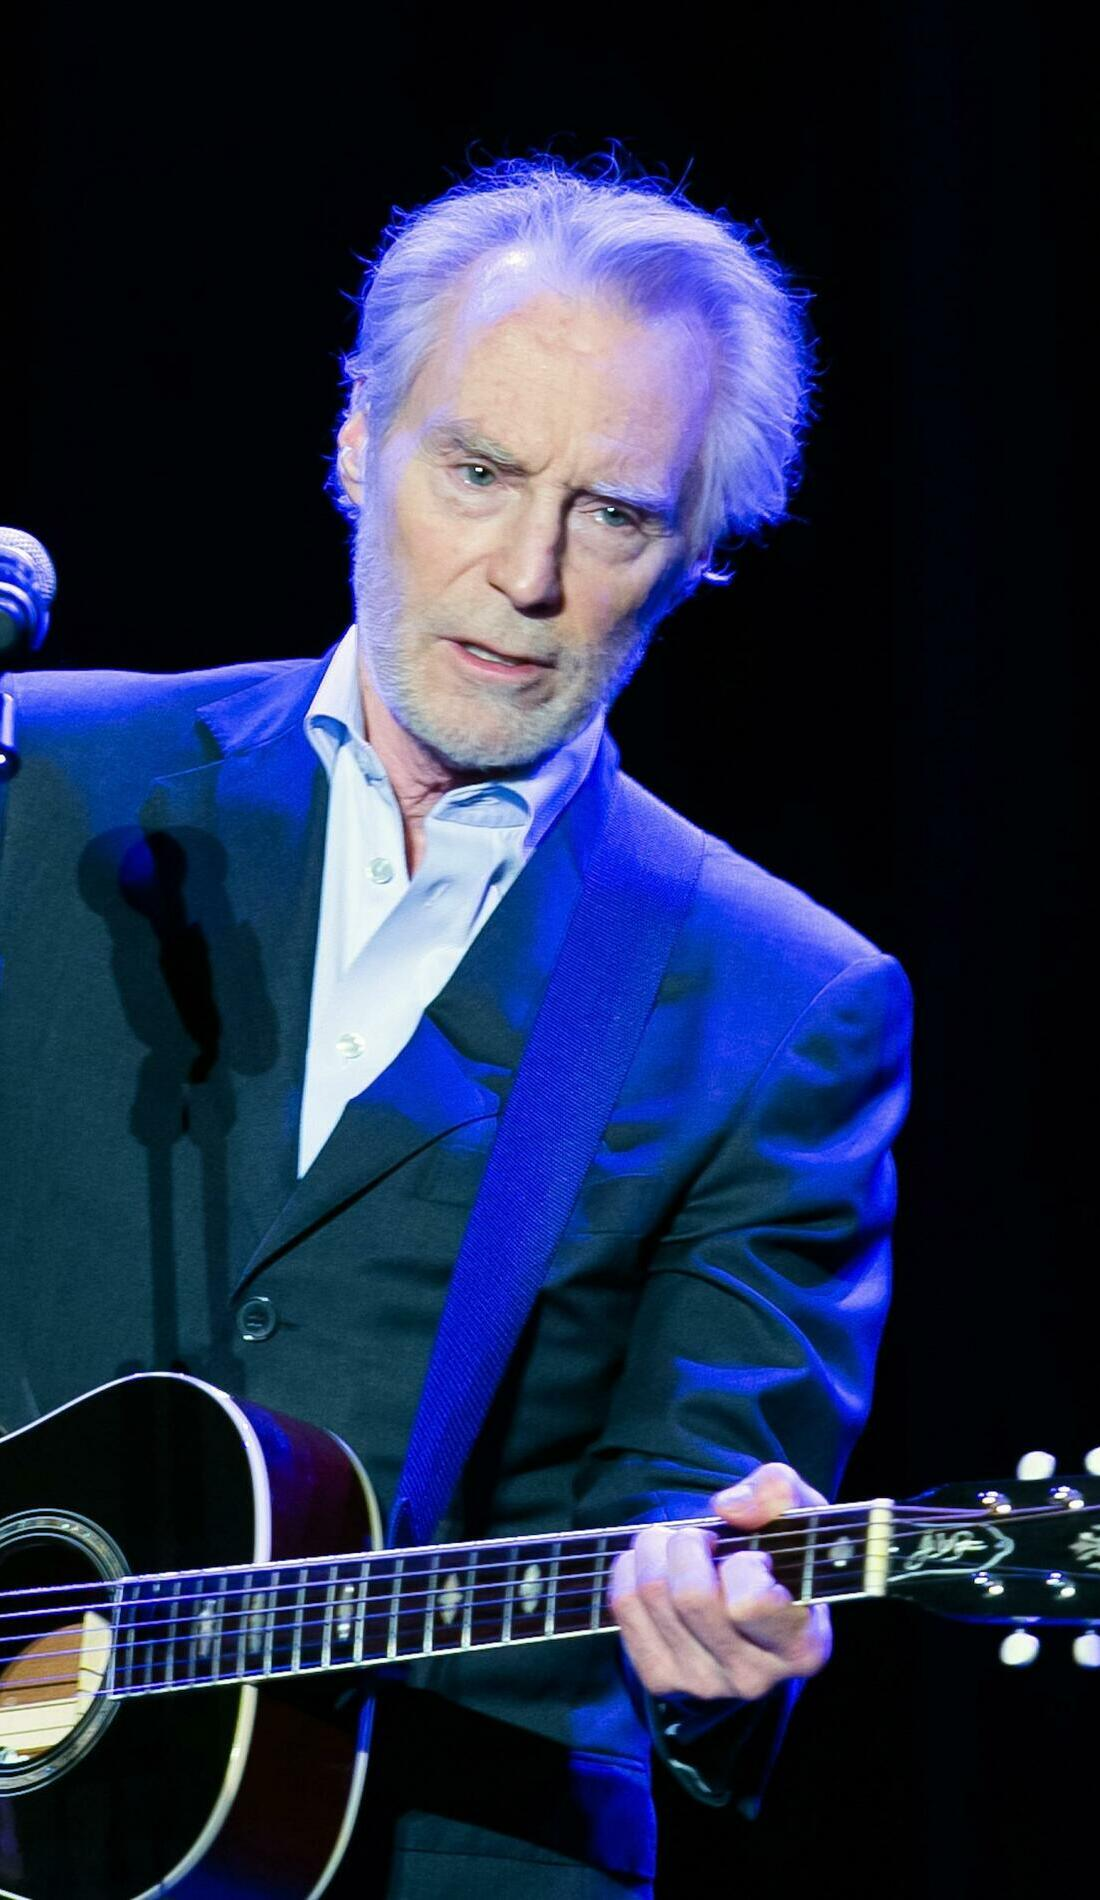 A JD Souther live event